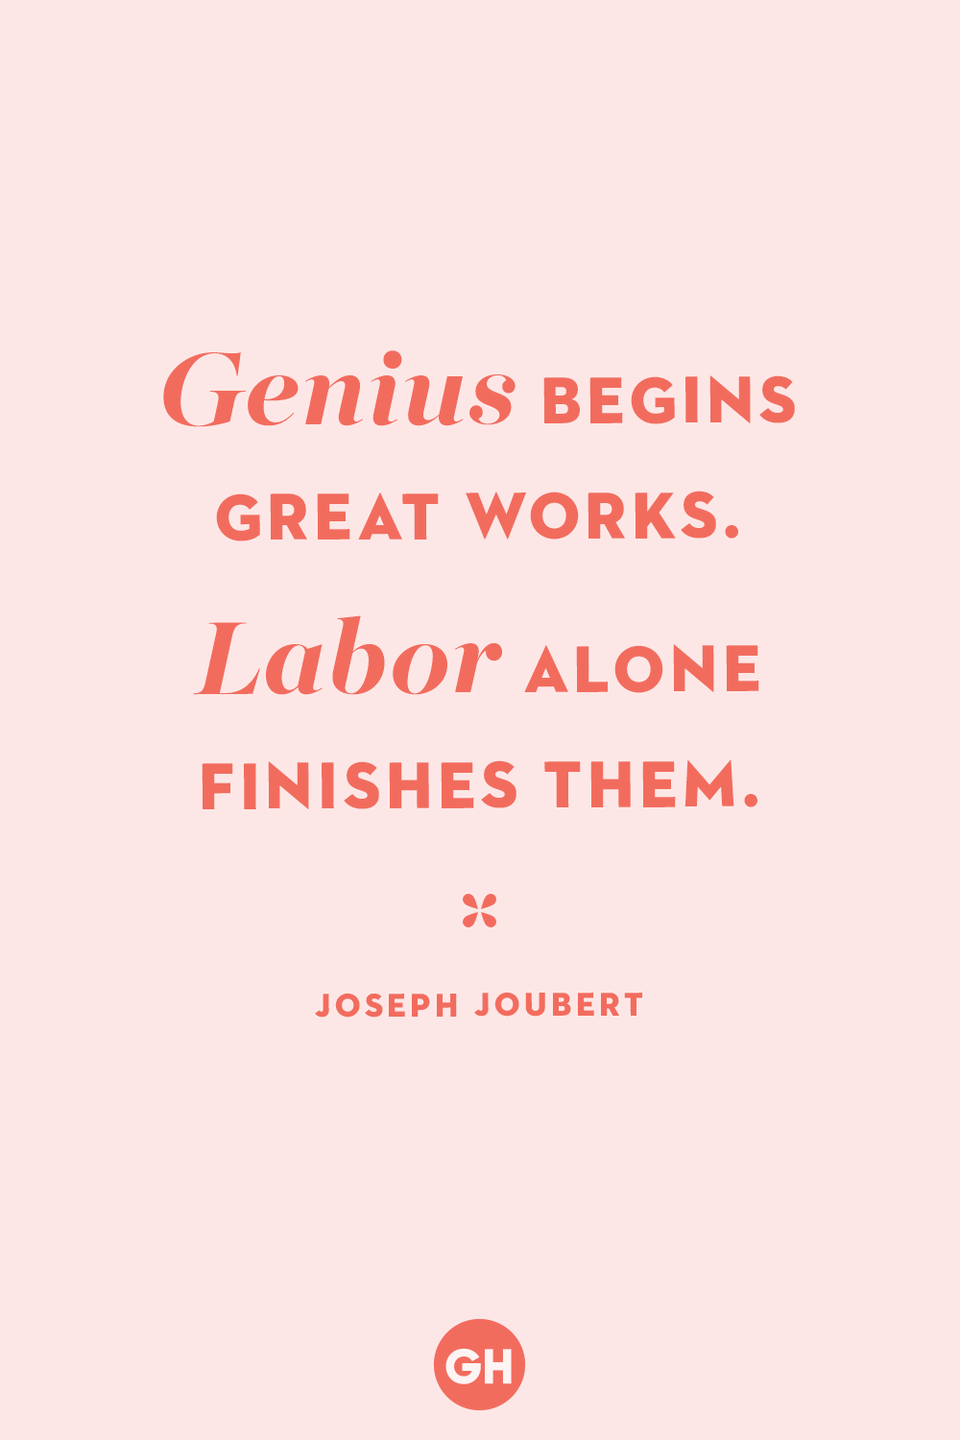 <p>Genius begins great works. Labor alone finishes them.</p>